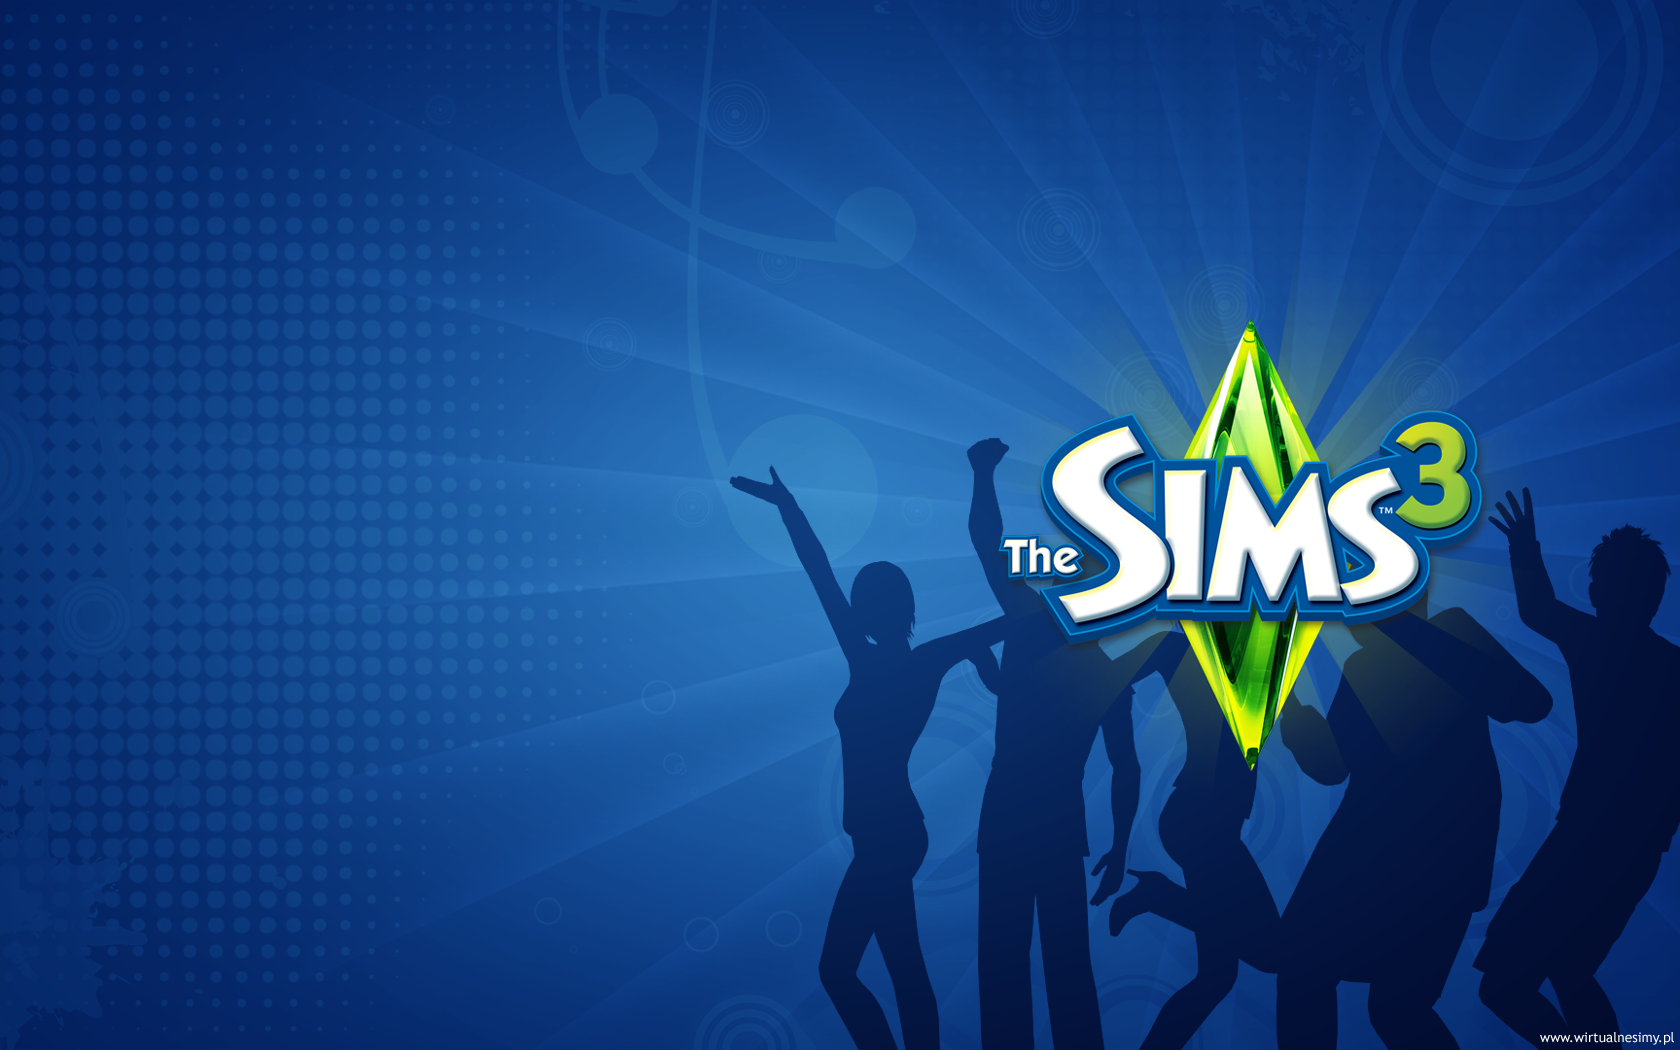 sims 4 backgrounds - photo #38